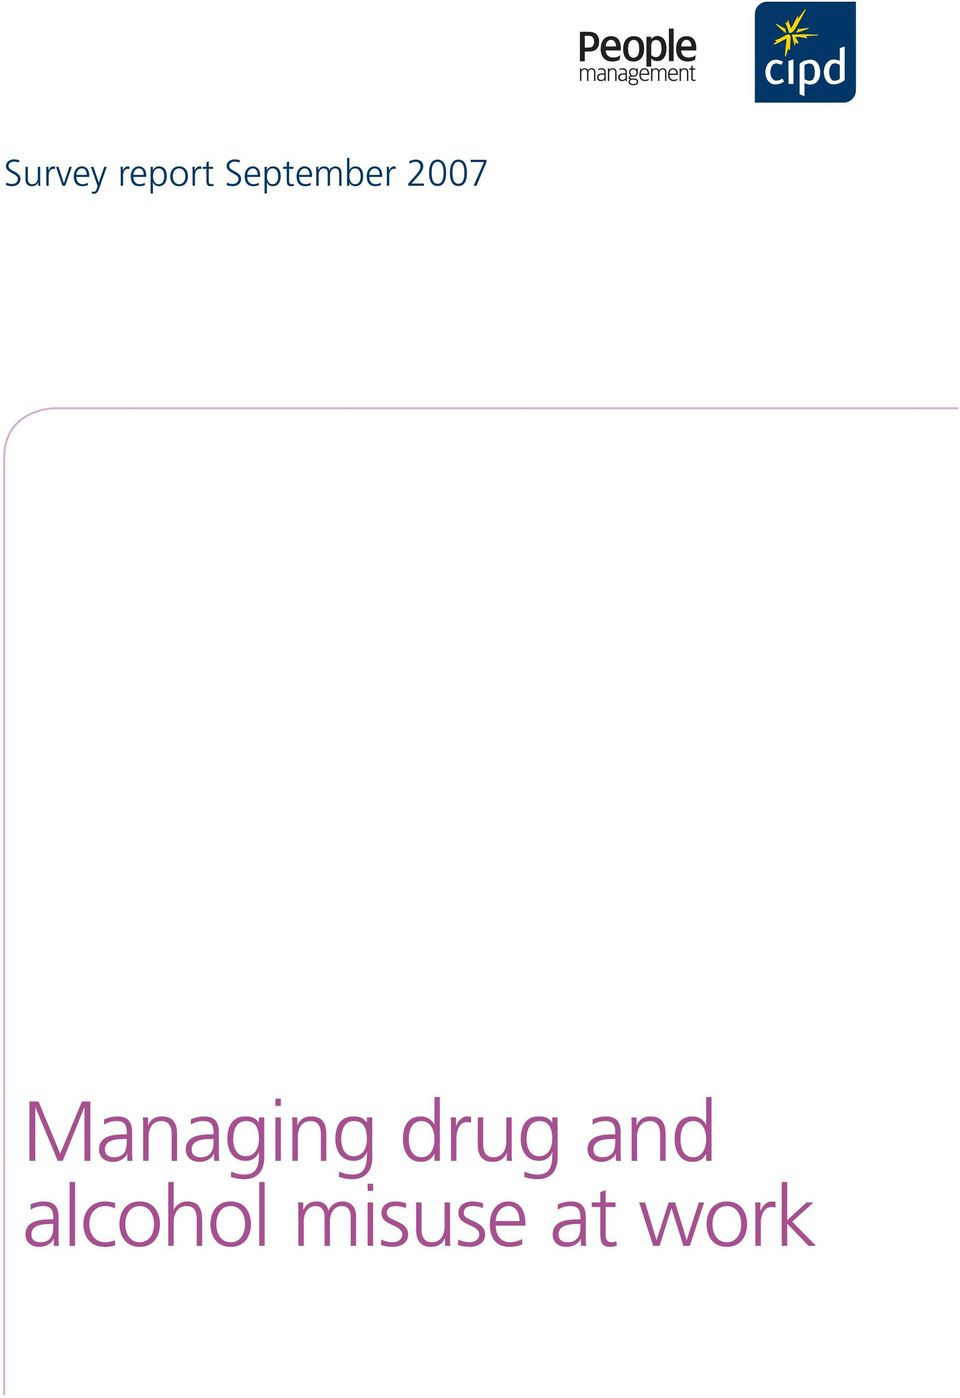 Managing drug and